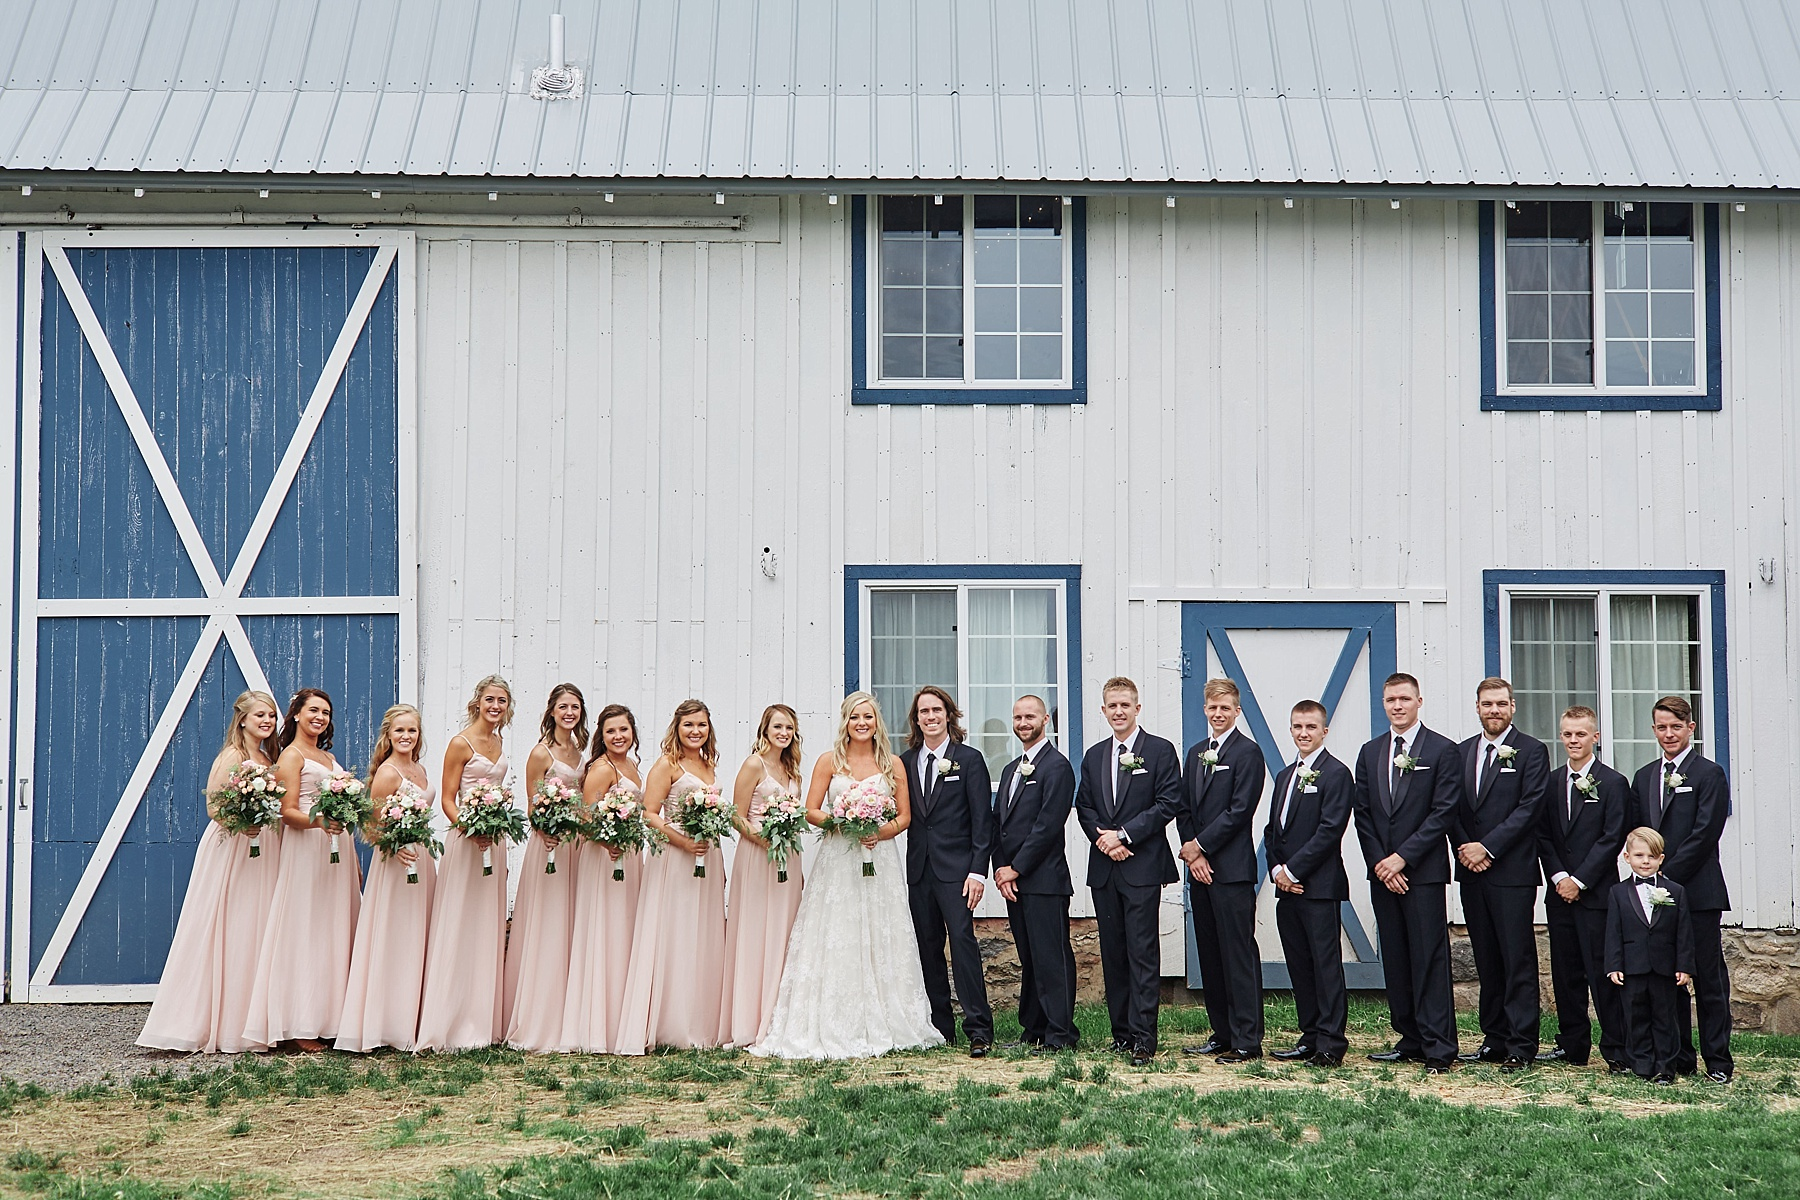 Bloom-Lake-Barn-Wedding-Schafer-Minnesota-Outdoor_0251.jpg